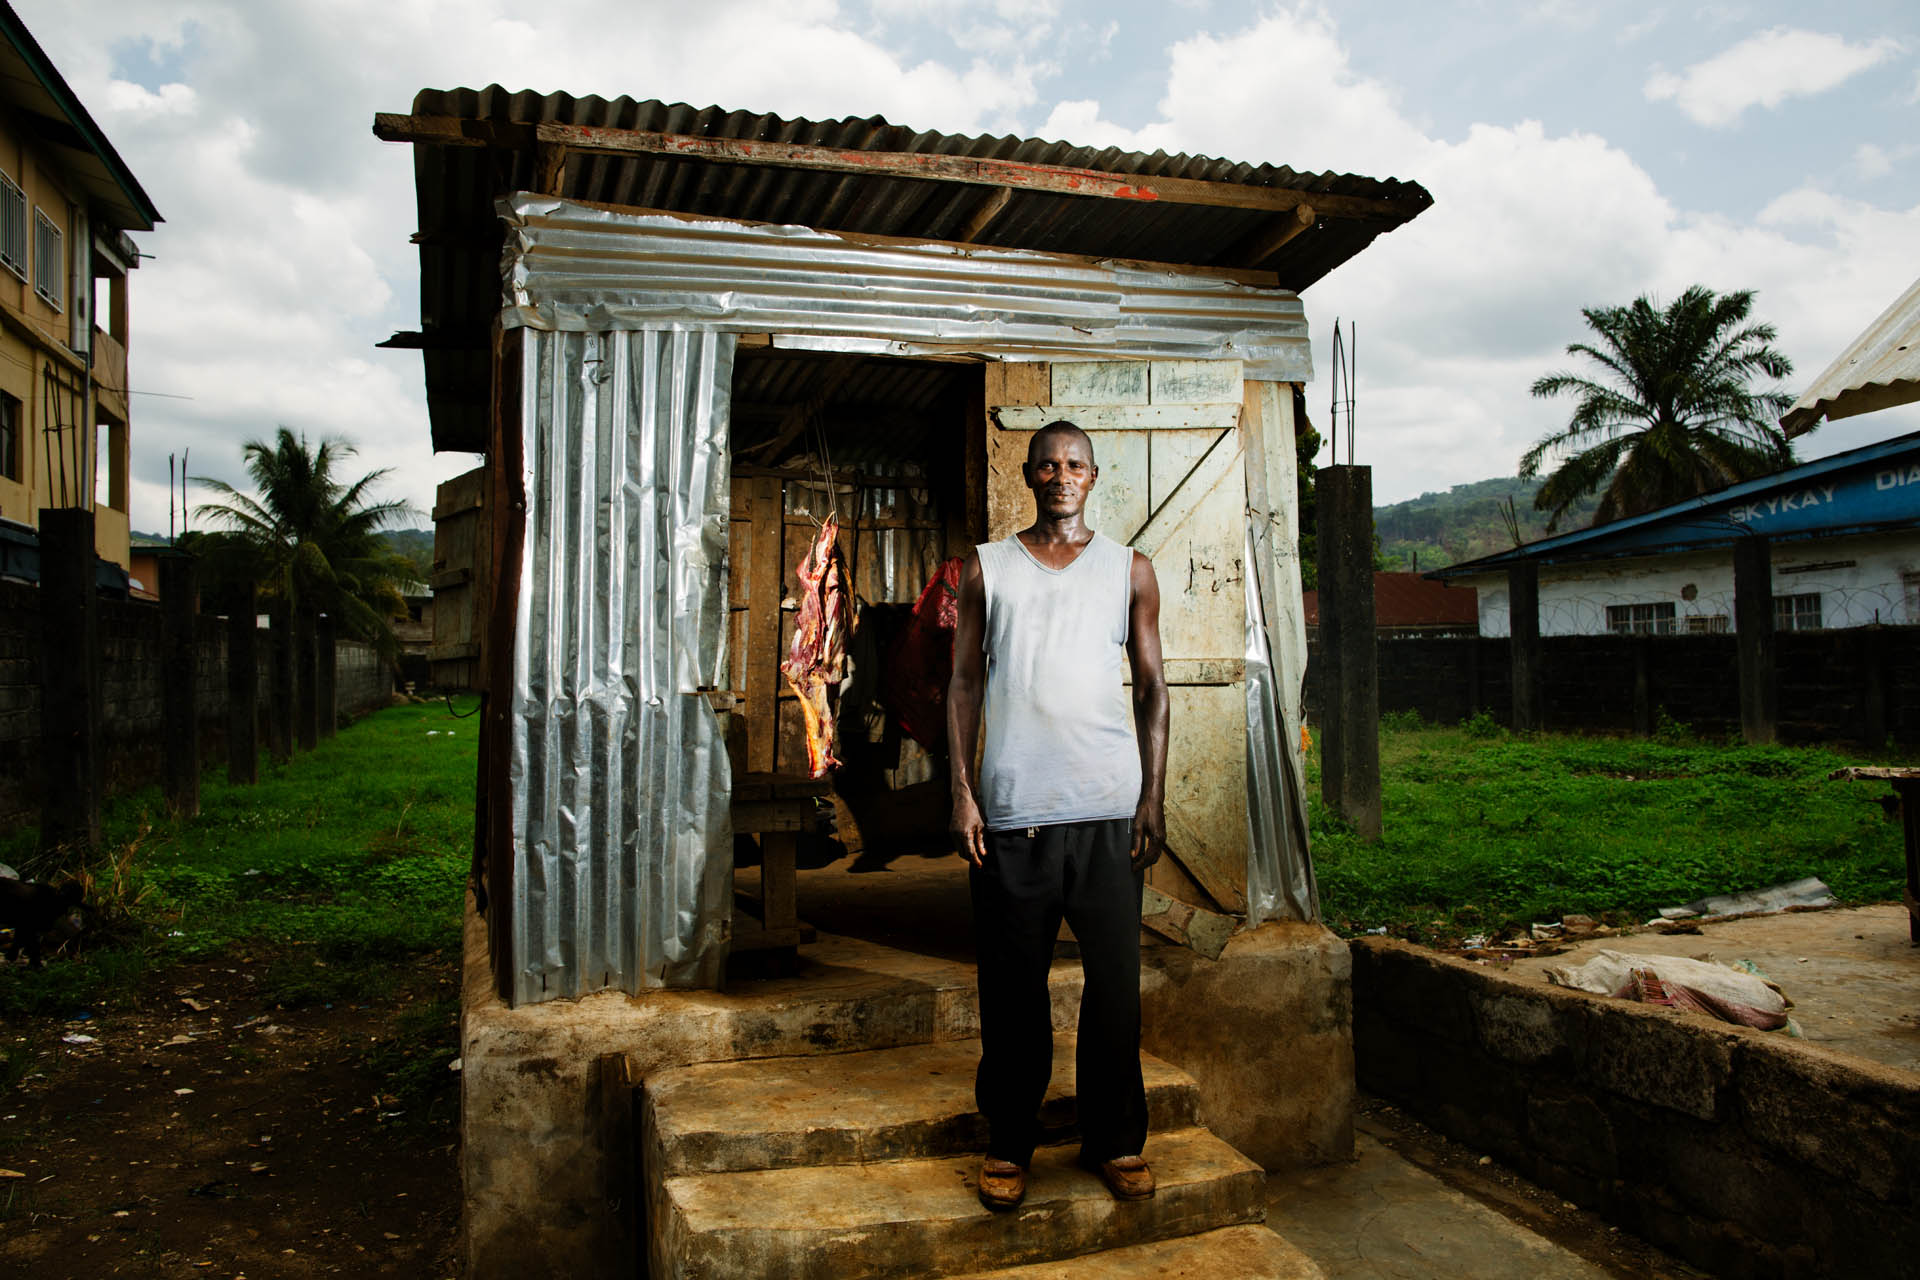 Butchers, Kenema, Sierra Leone. Personal work